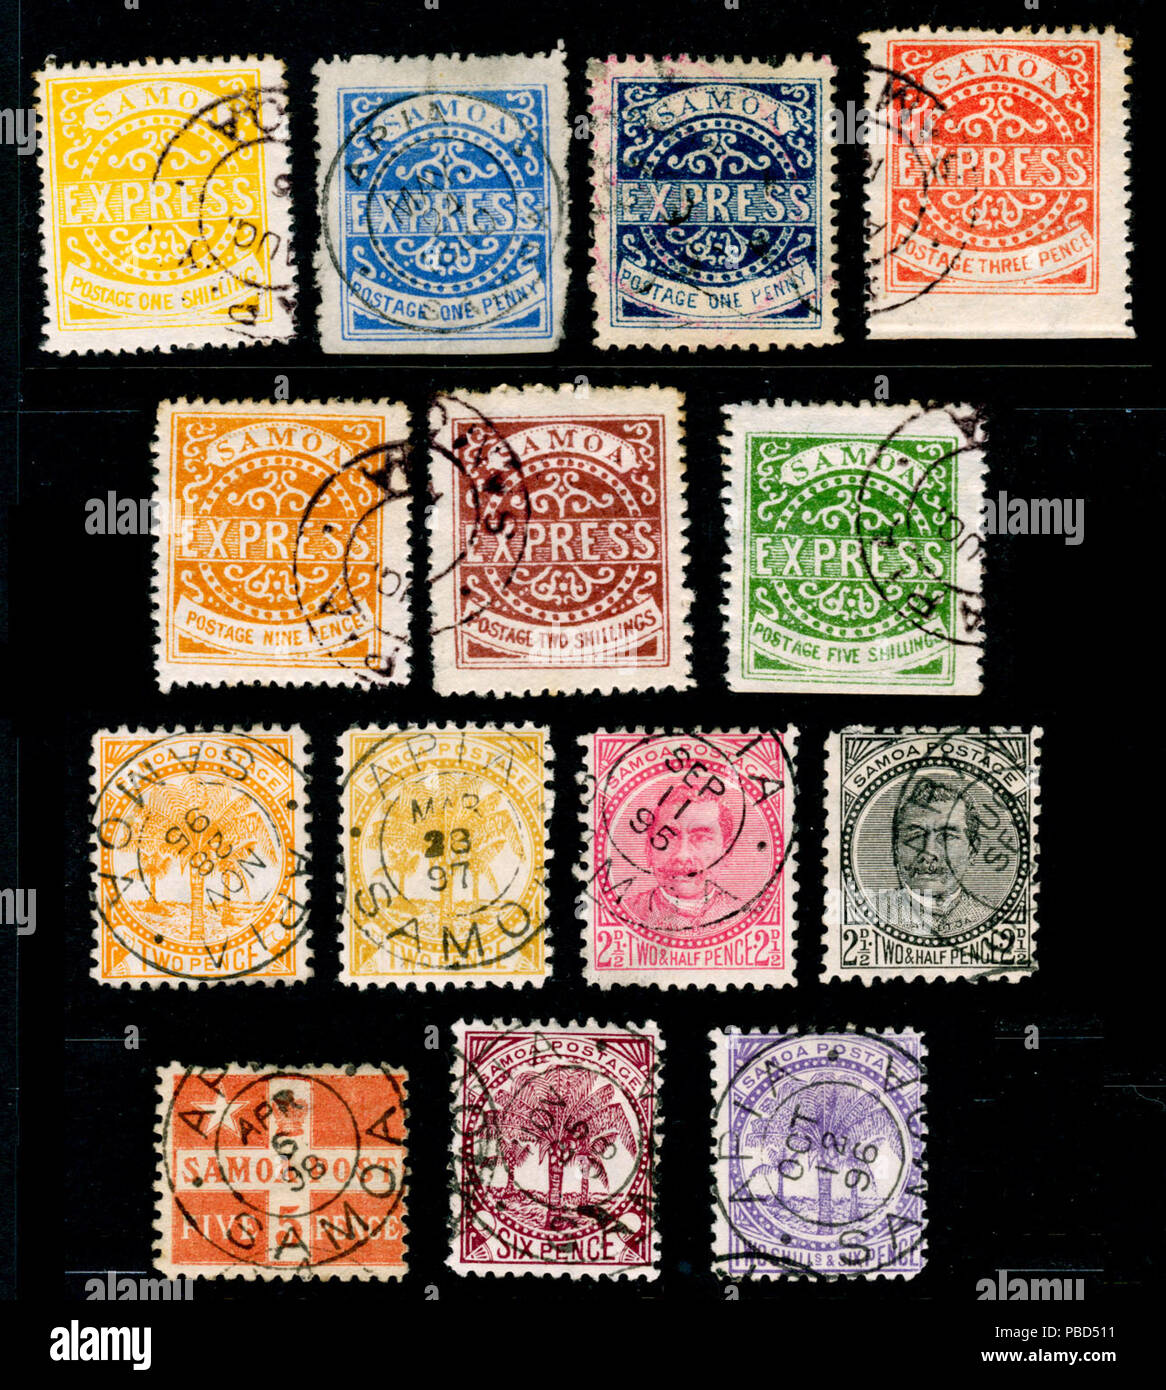 . English: Various used stamps of Samoa from before 1900. Probably includes forgeries. before 1900. 1285 Samoa stamps - Stock Image